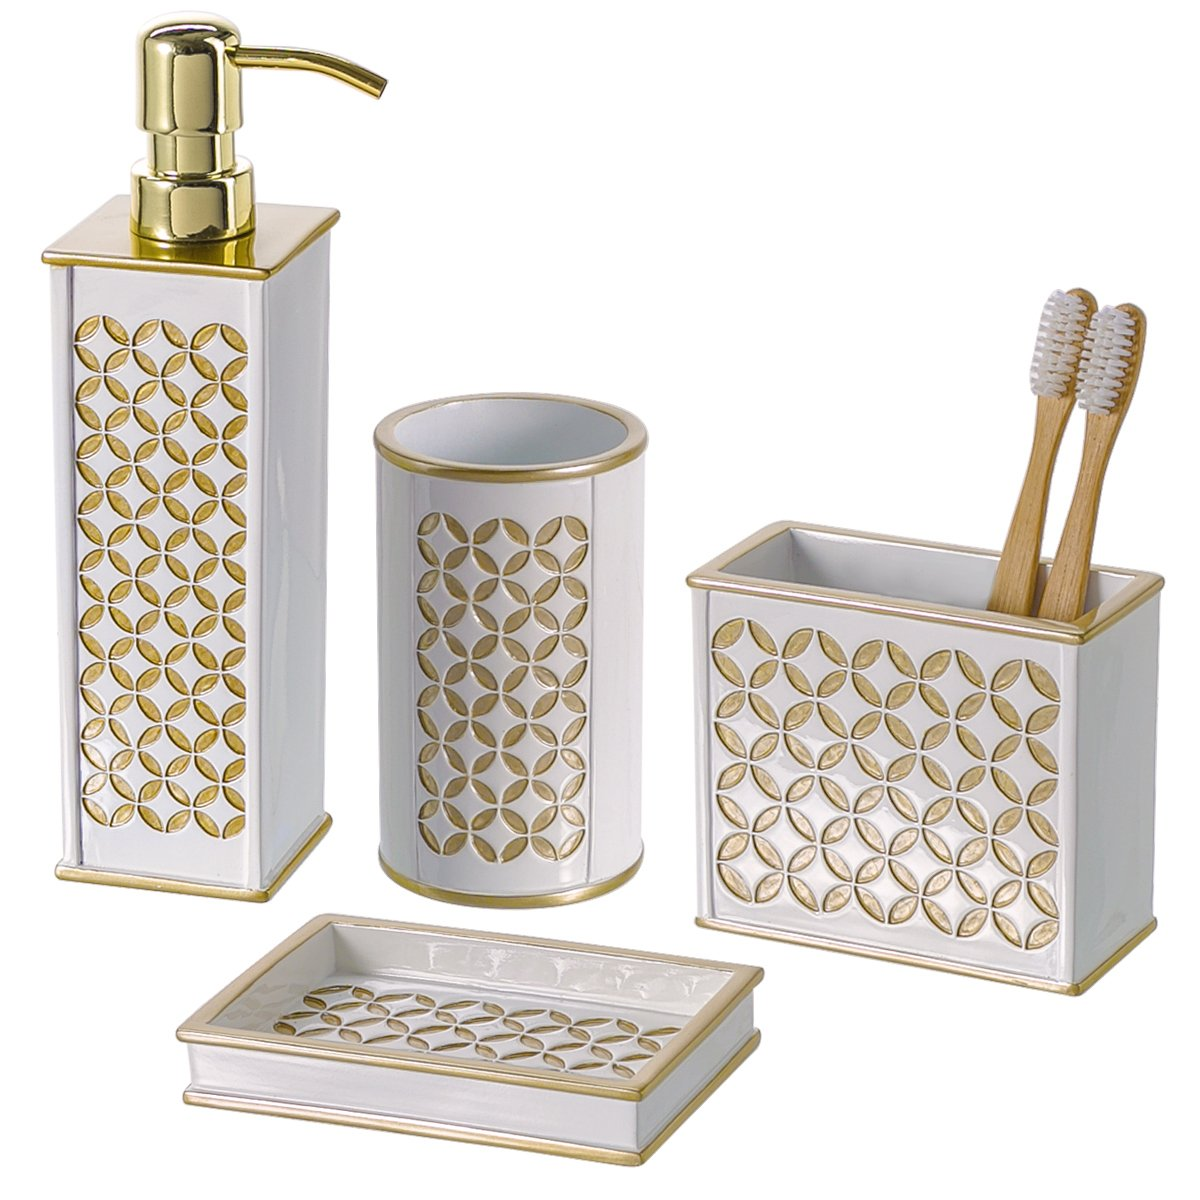 4 piece bathroom accessories set dispenser toothbrush for White and gold bathroom accessories